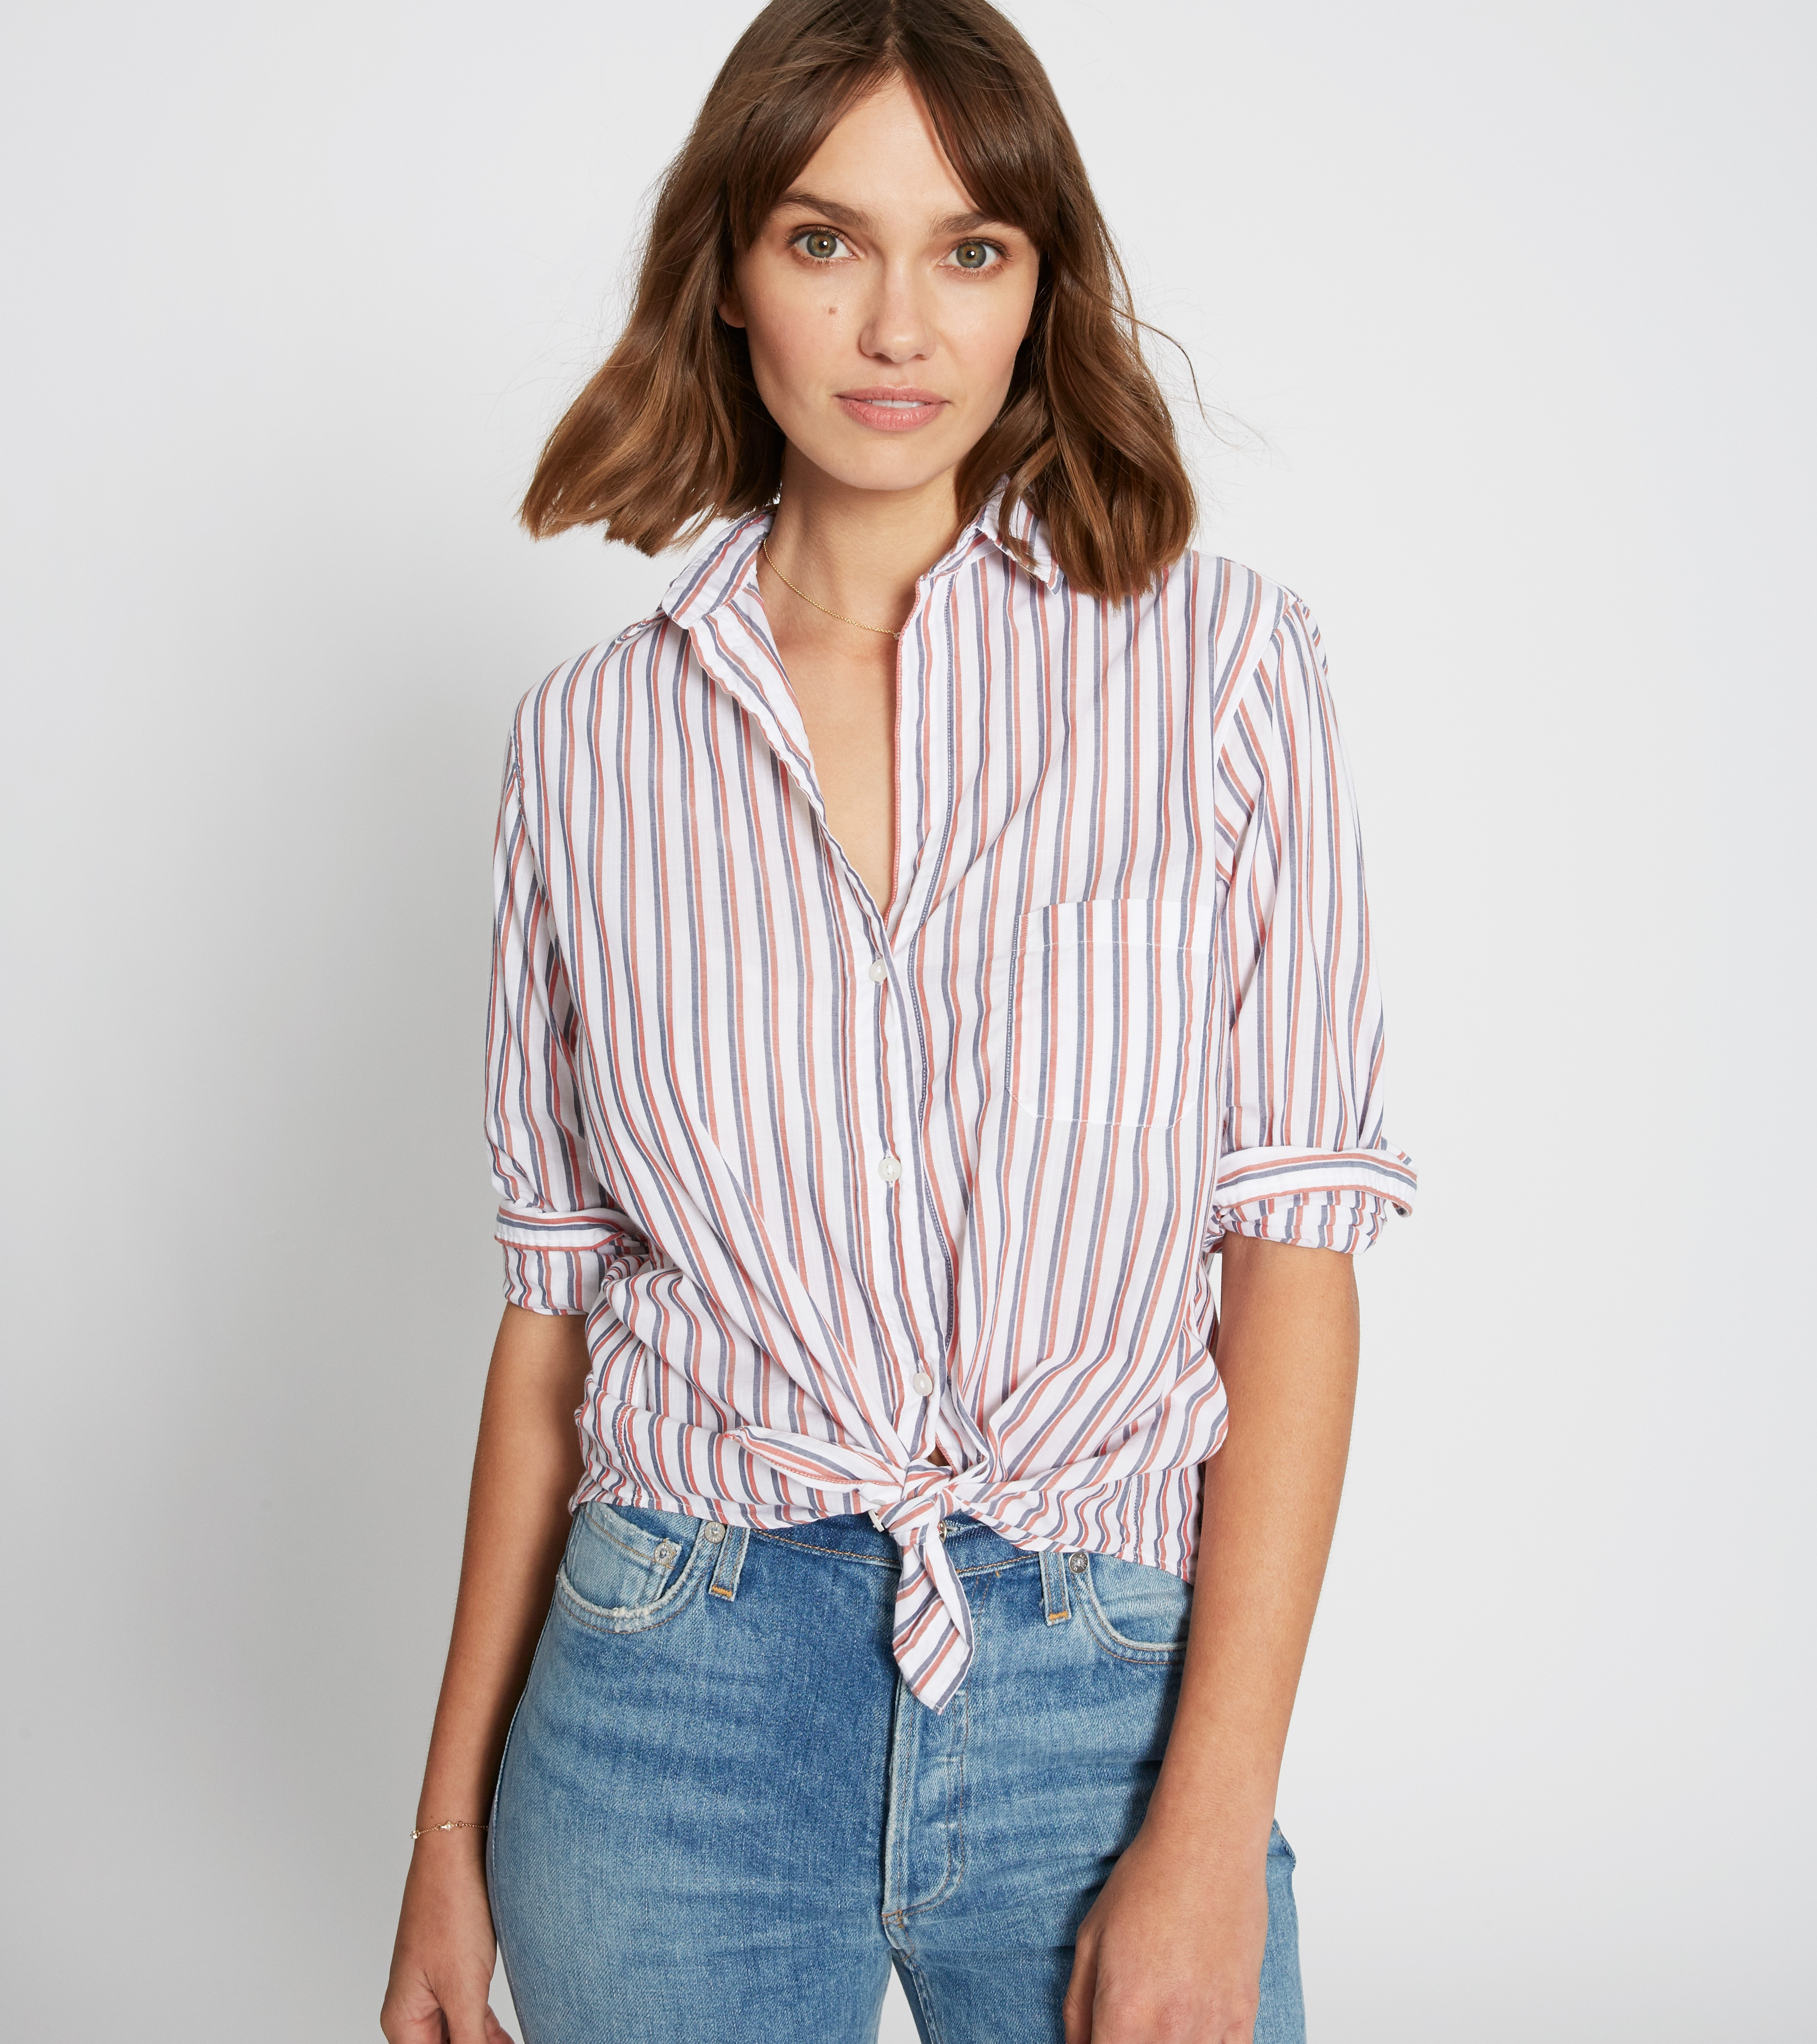 Image of The Hero Endless Summer Cotton Stripes